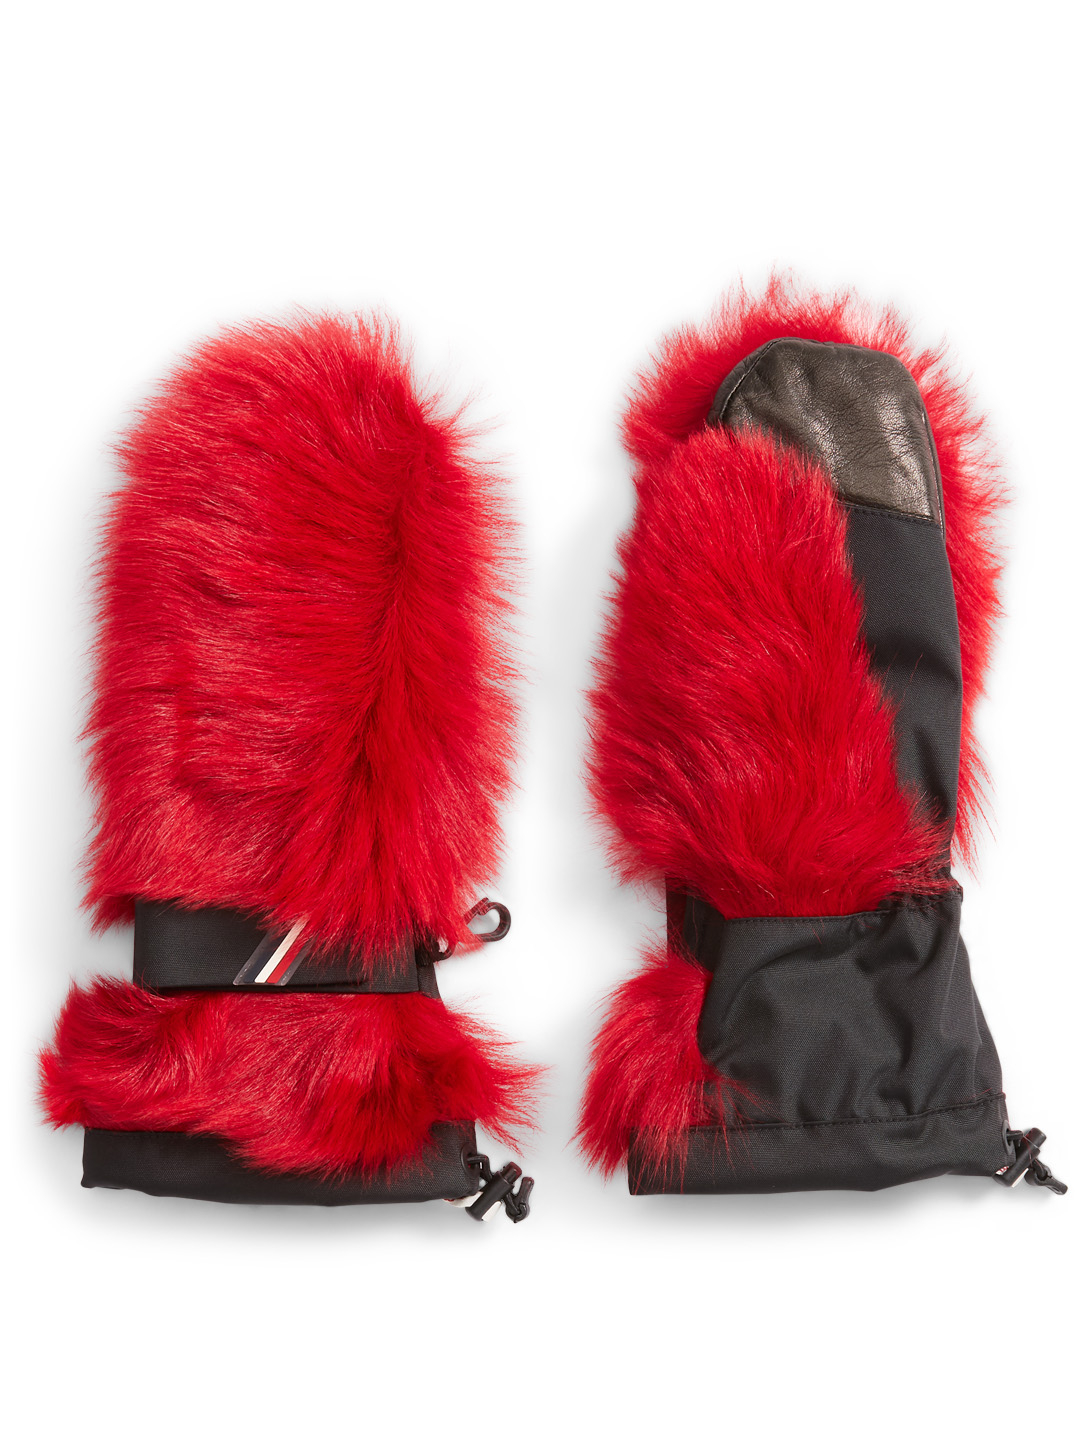 c17faf95b9a7 MONCLER 3 Moncler Grenoble Fur-Trimmed Gloves